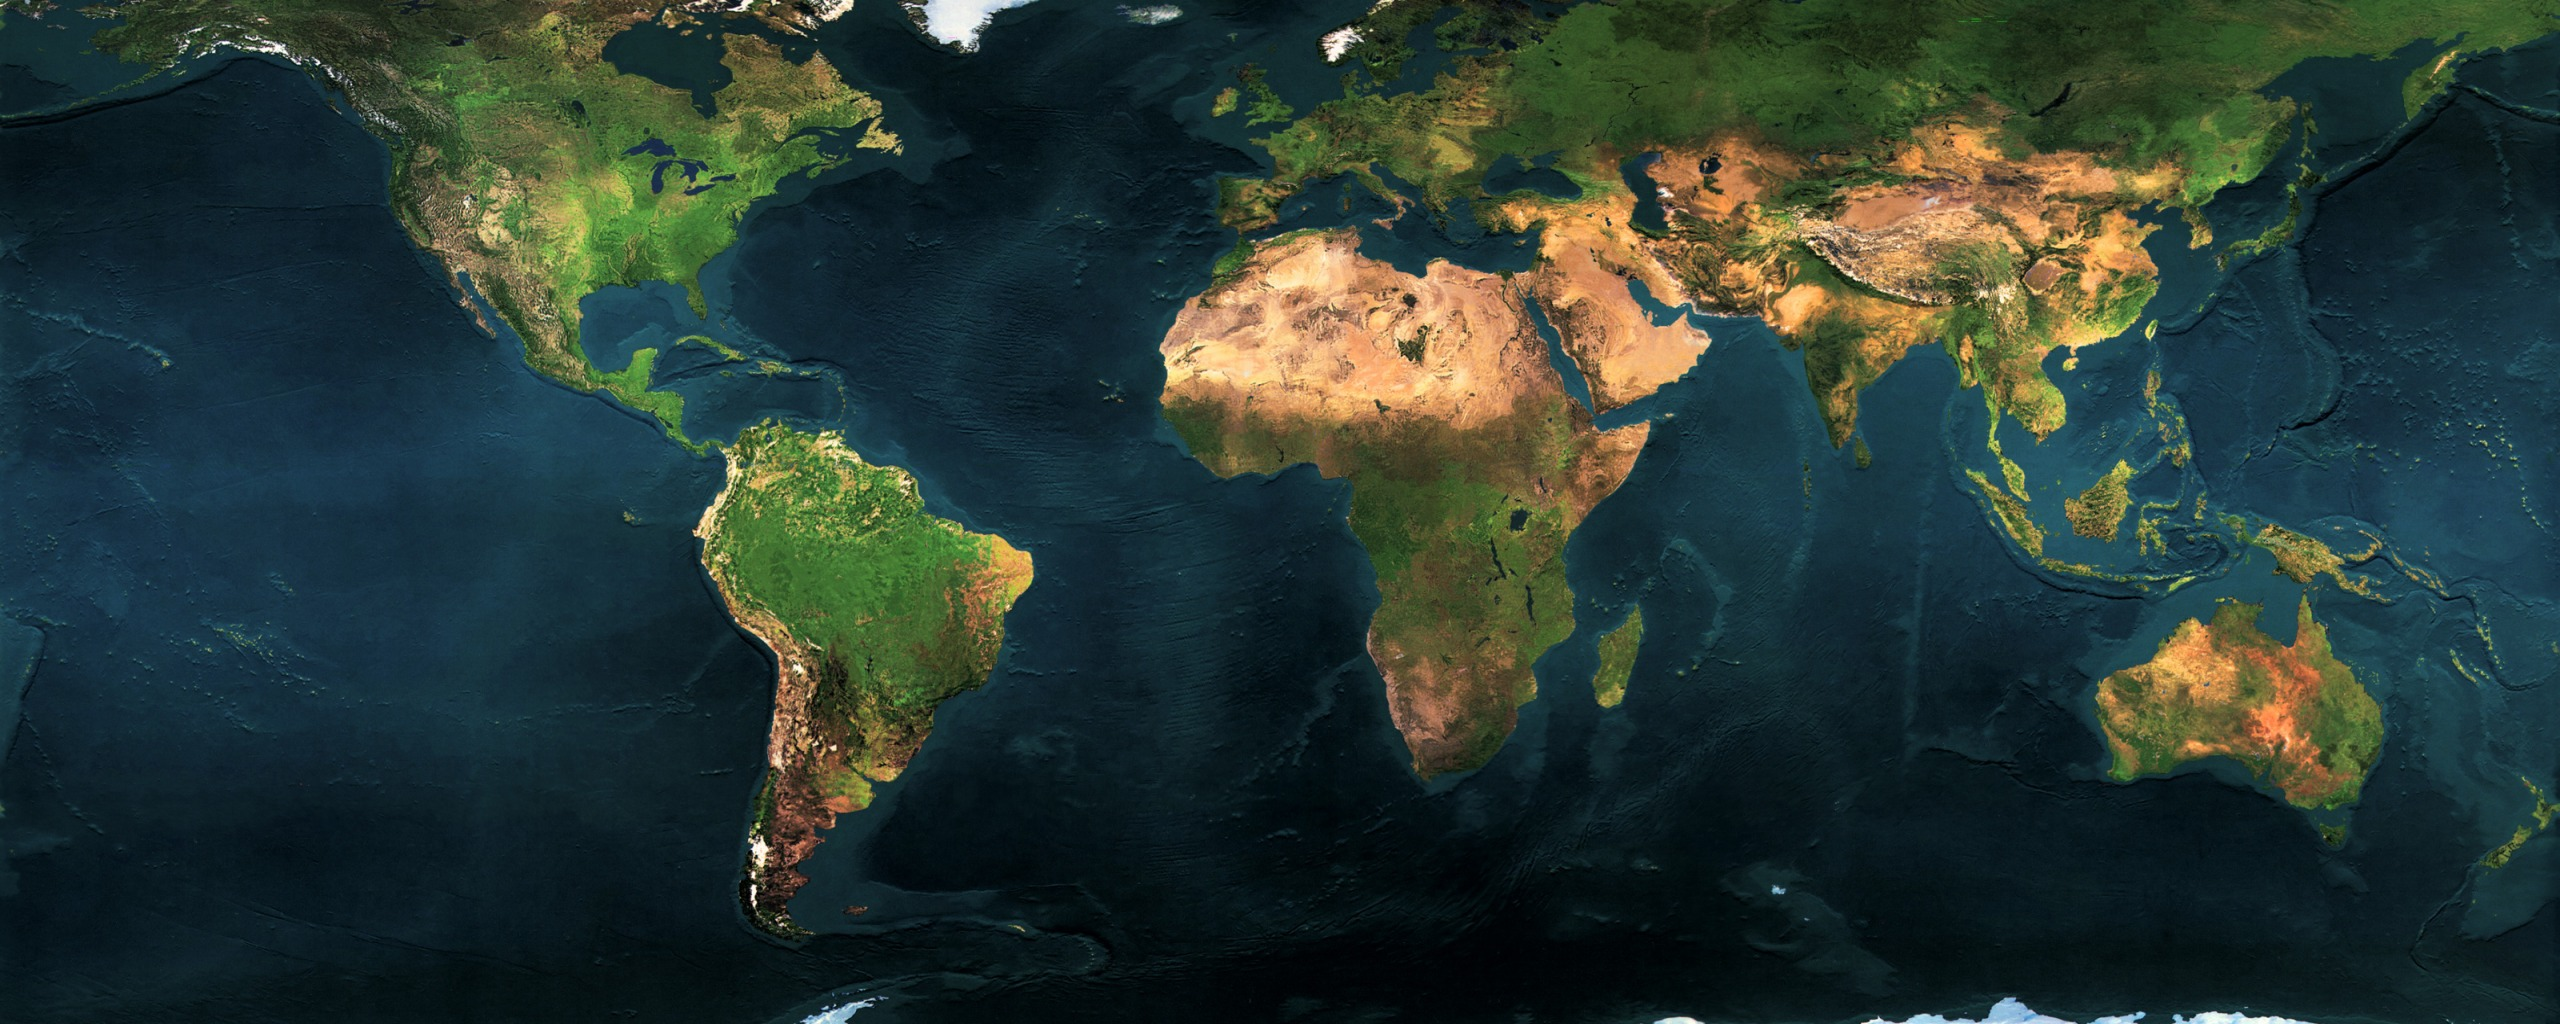 Earth Map Dual Monitor Wallpapers HD Wallpapers 2560x1024